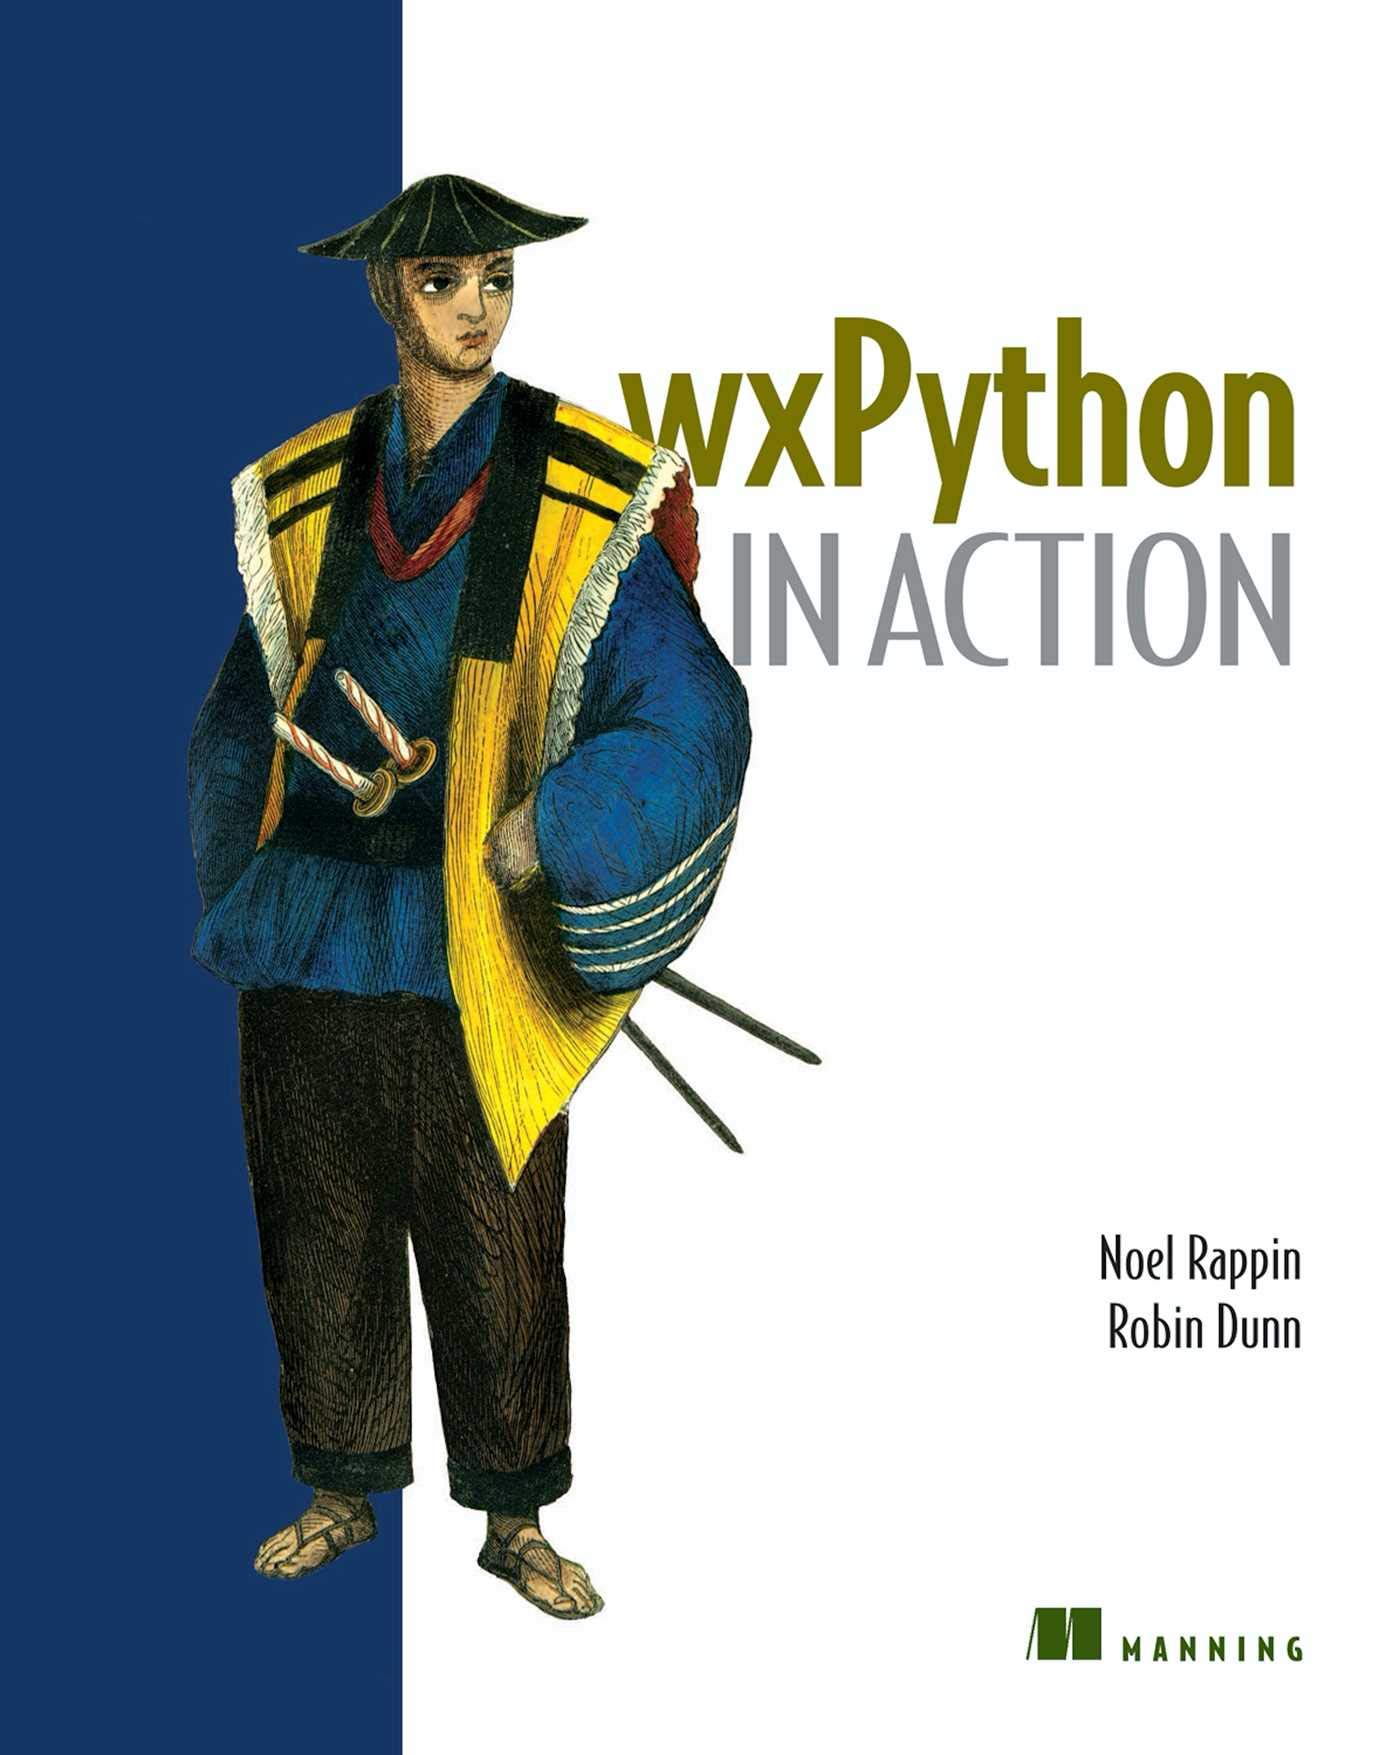 Wxpython in Action by Noel Rappin, Robin Dunn